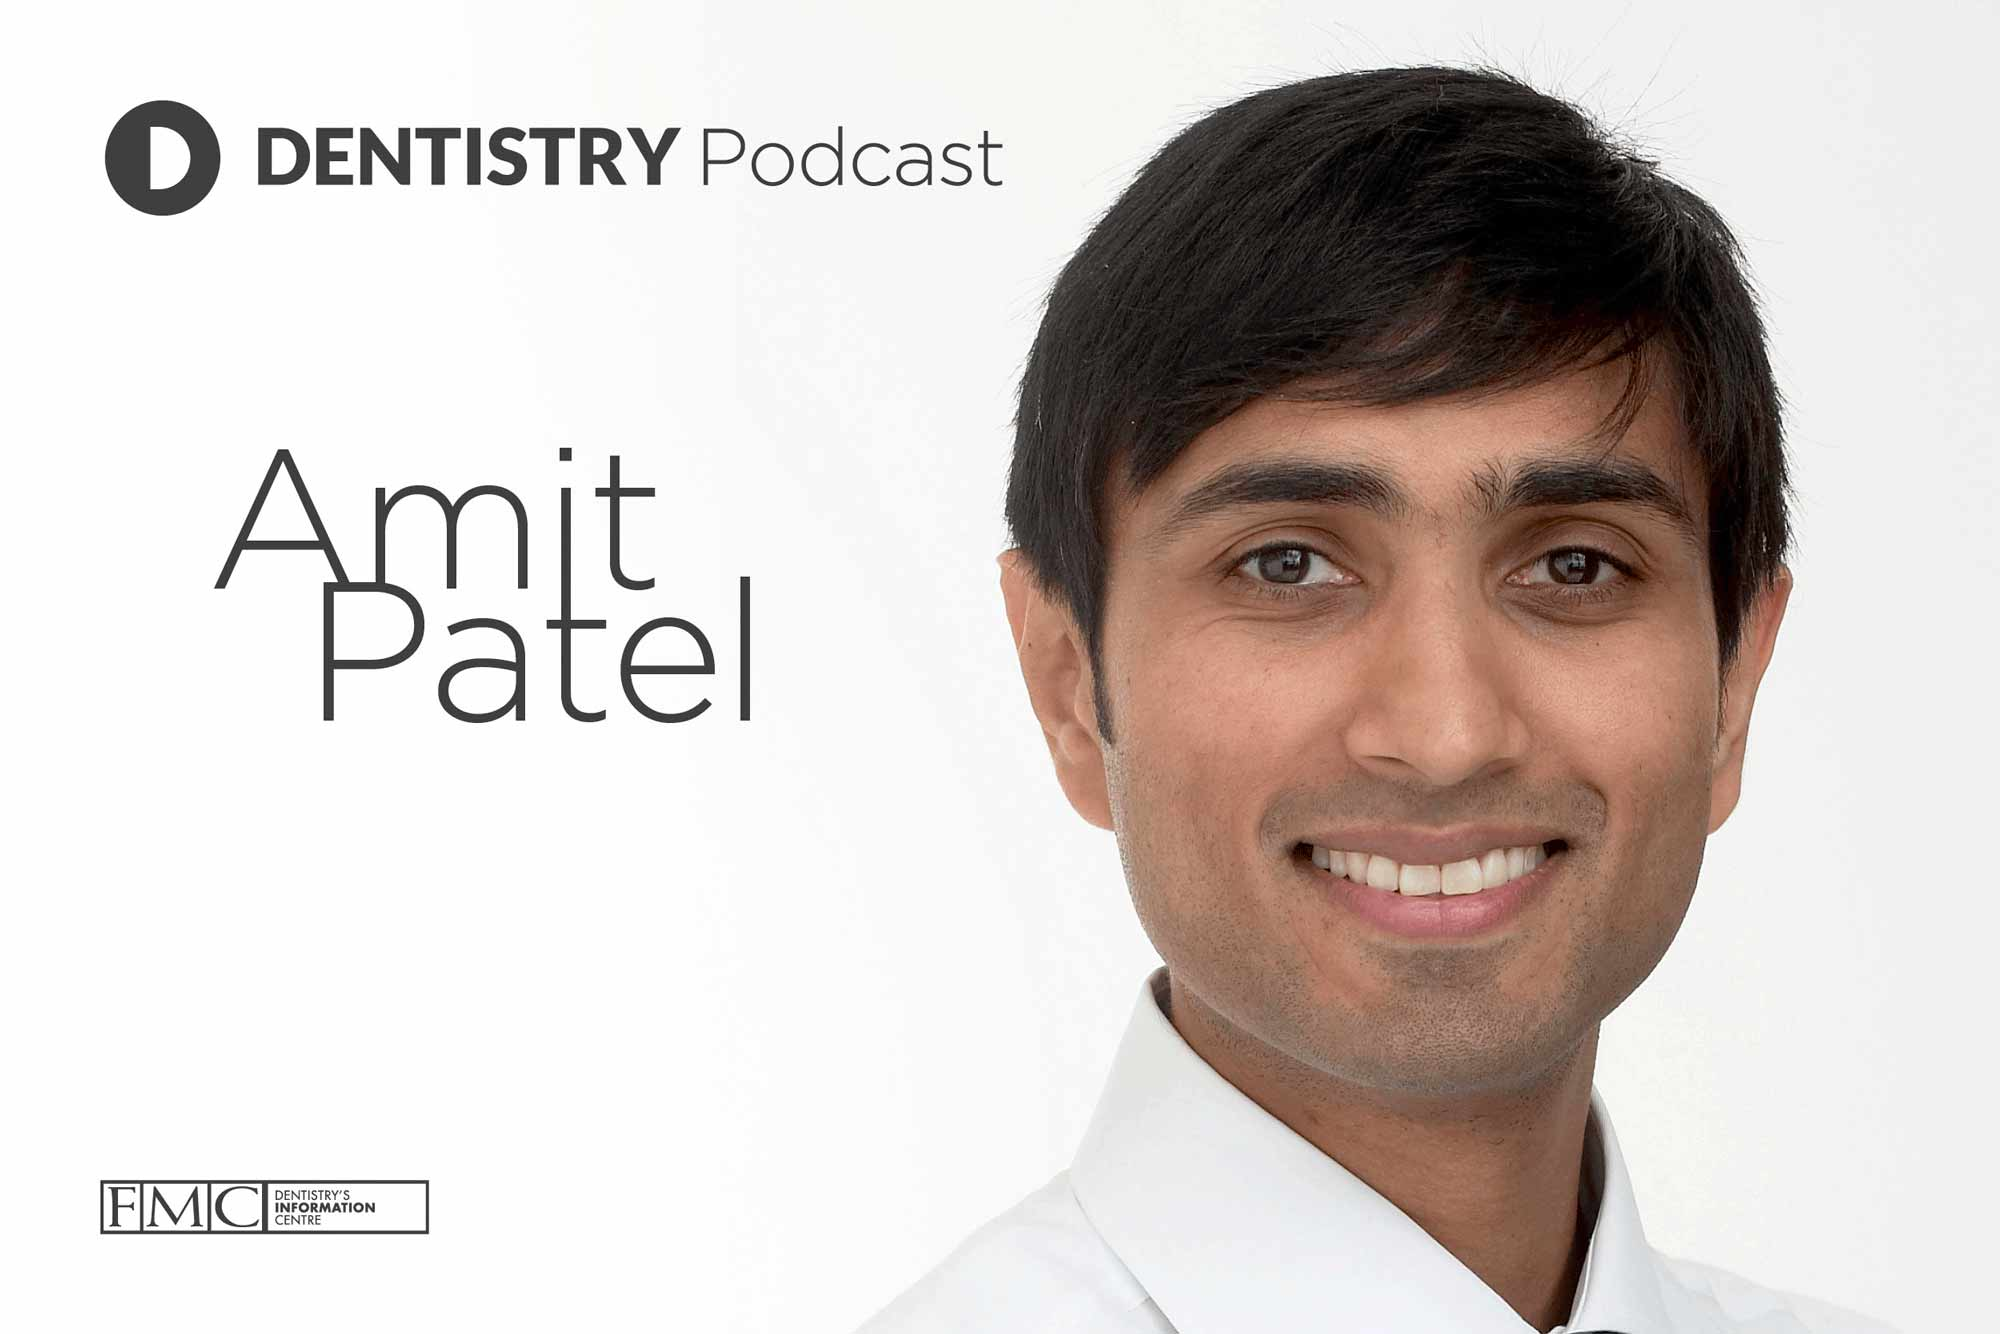 Amit Patel talks to Dentistry Online about his path into dentistry, how he fell into periodontics and his mission to overcome his fear of heights